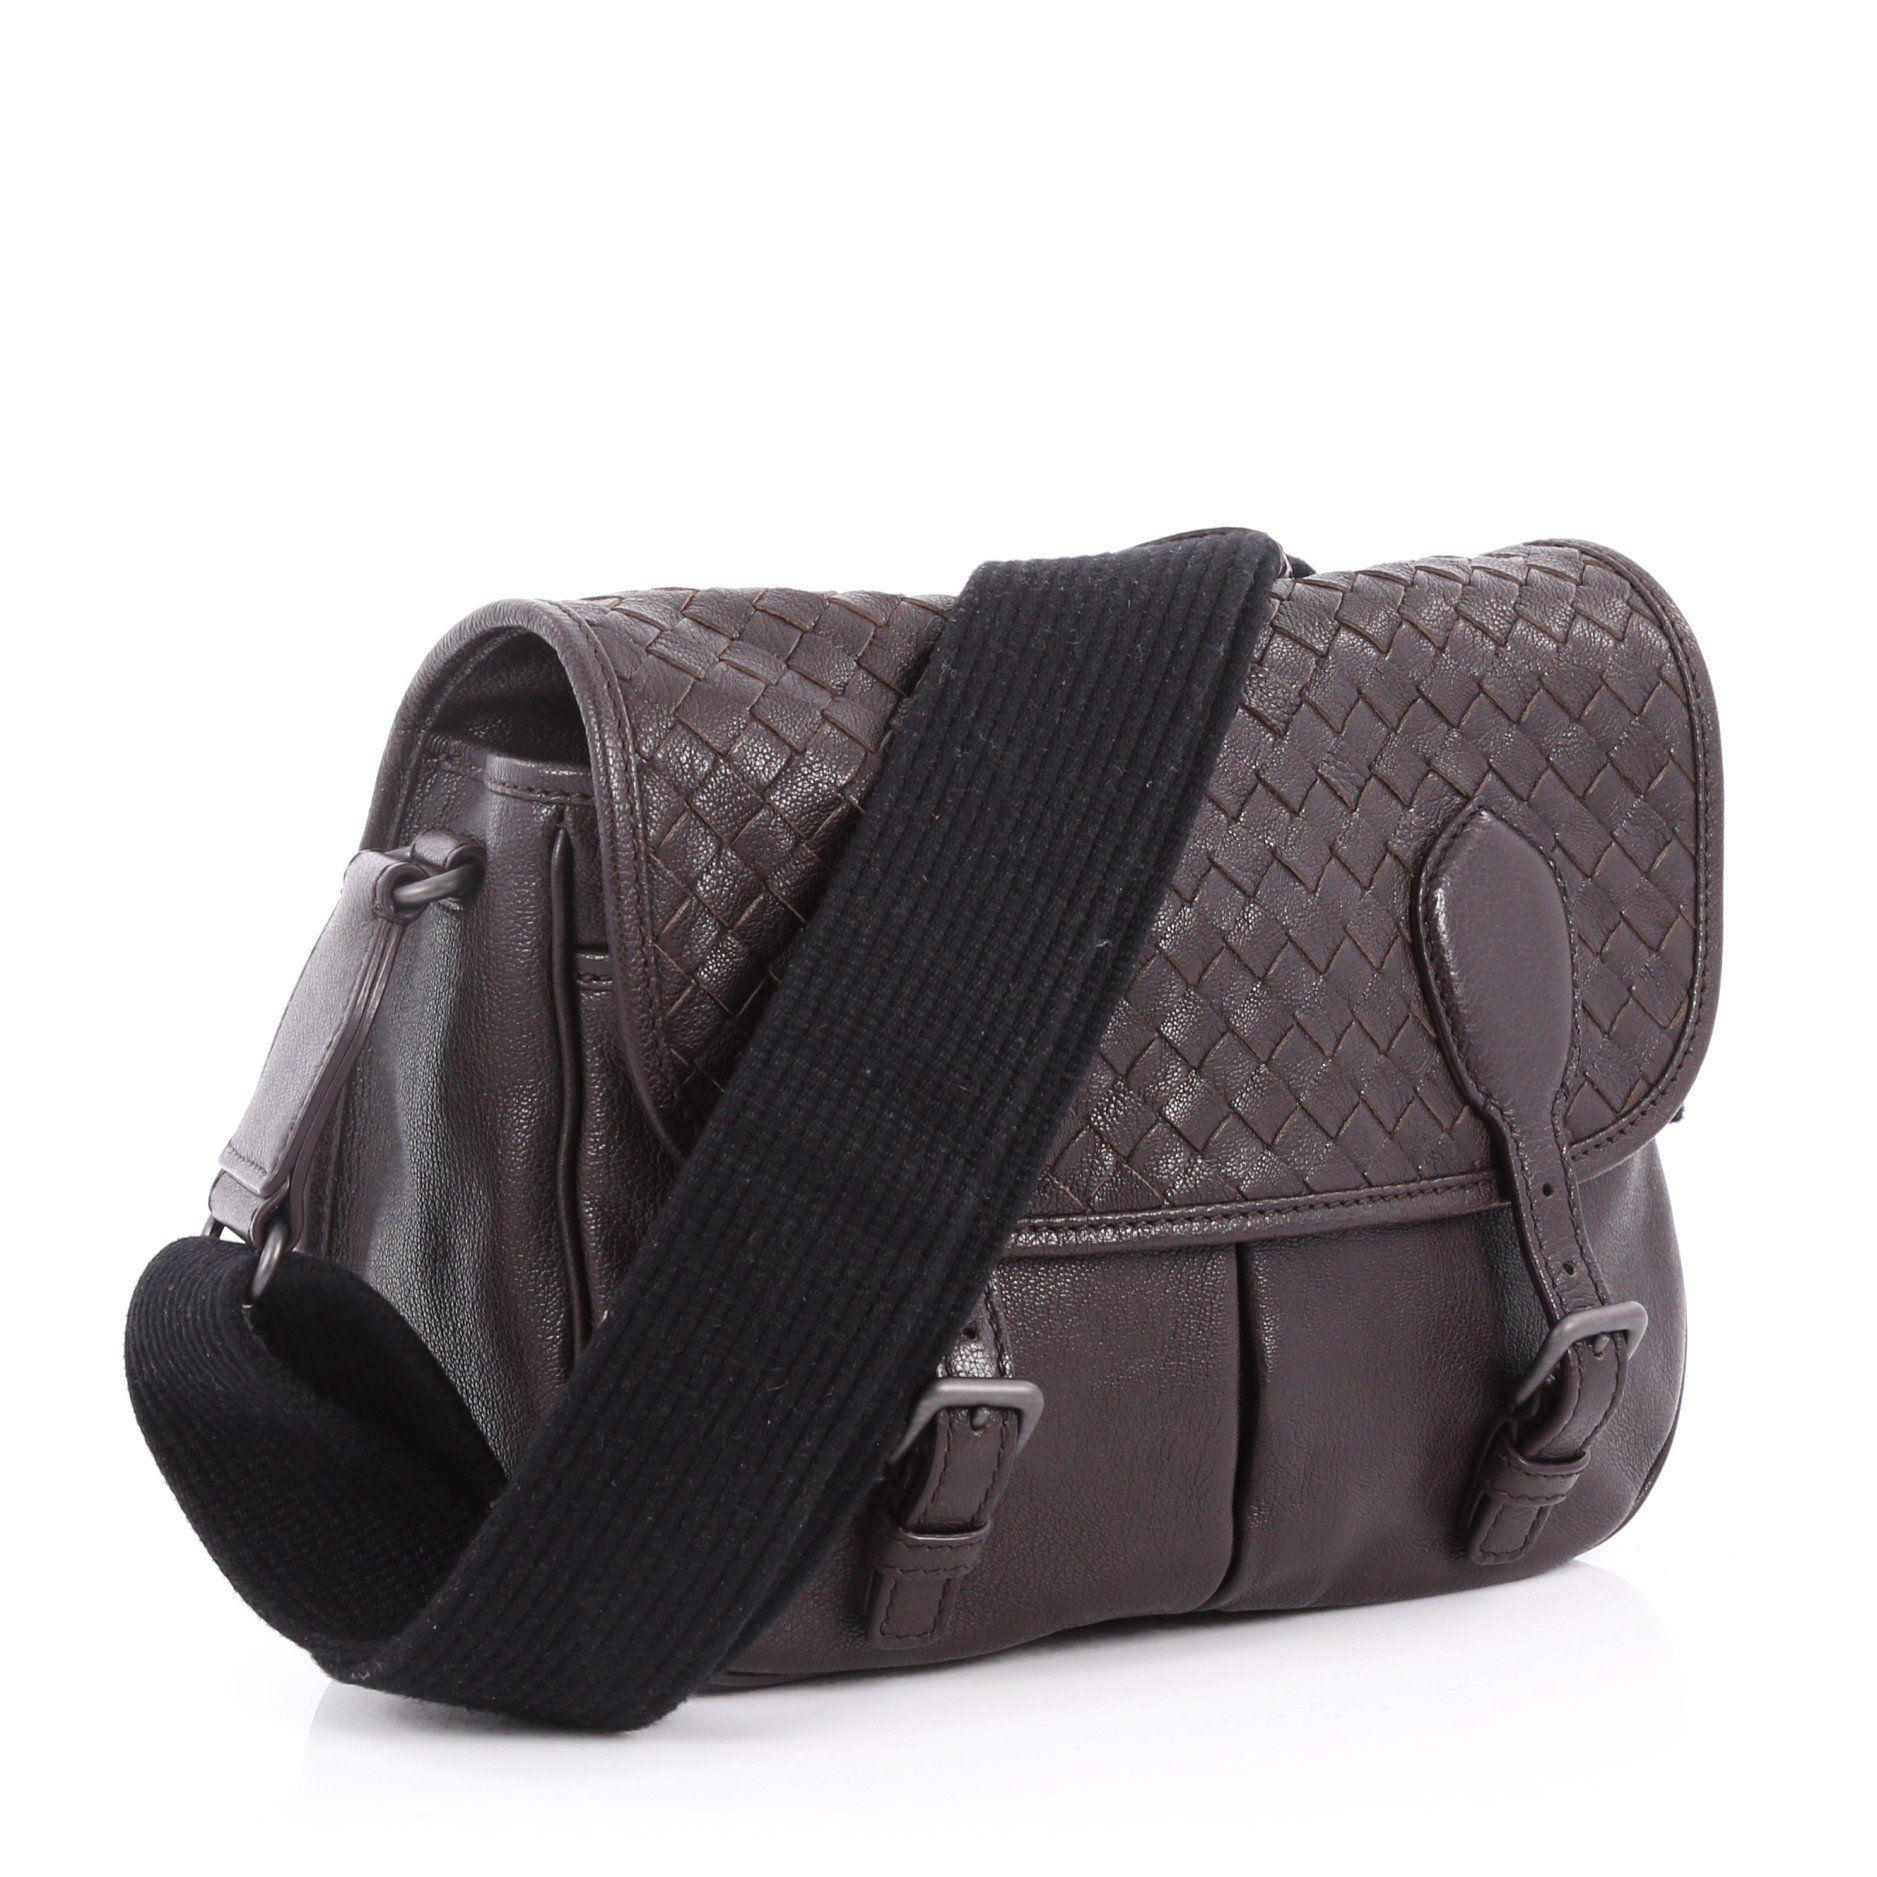 Bottega Veneta Gardena Messenger Bag Cervo Leather With Intrecciato ... e25cc54ae9